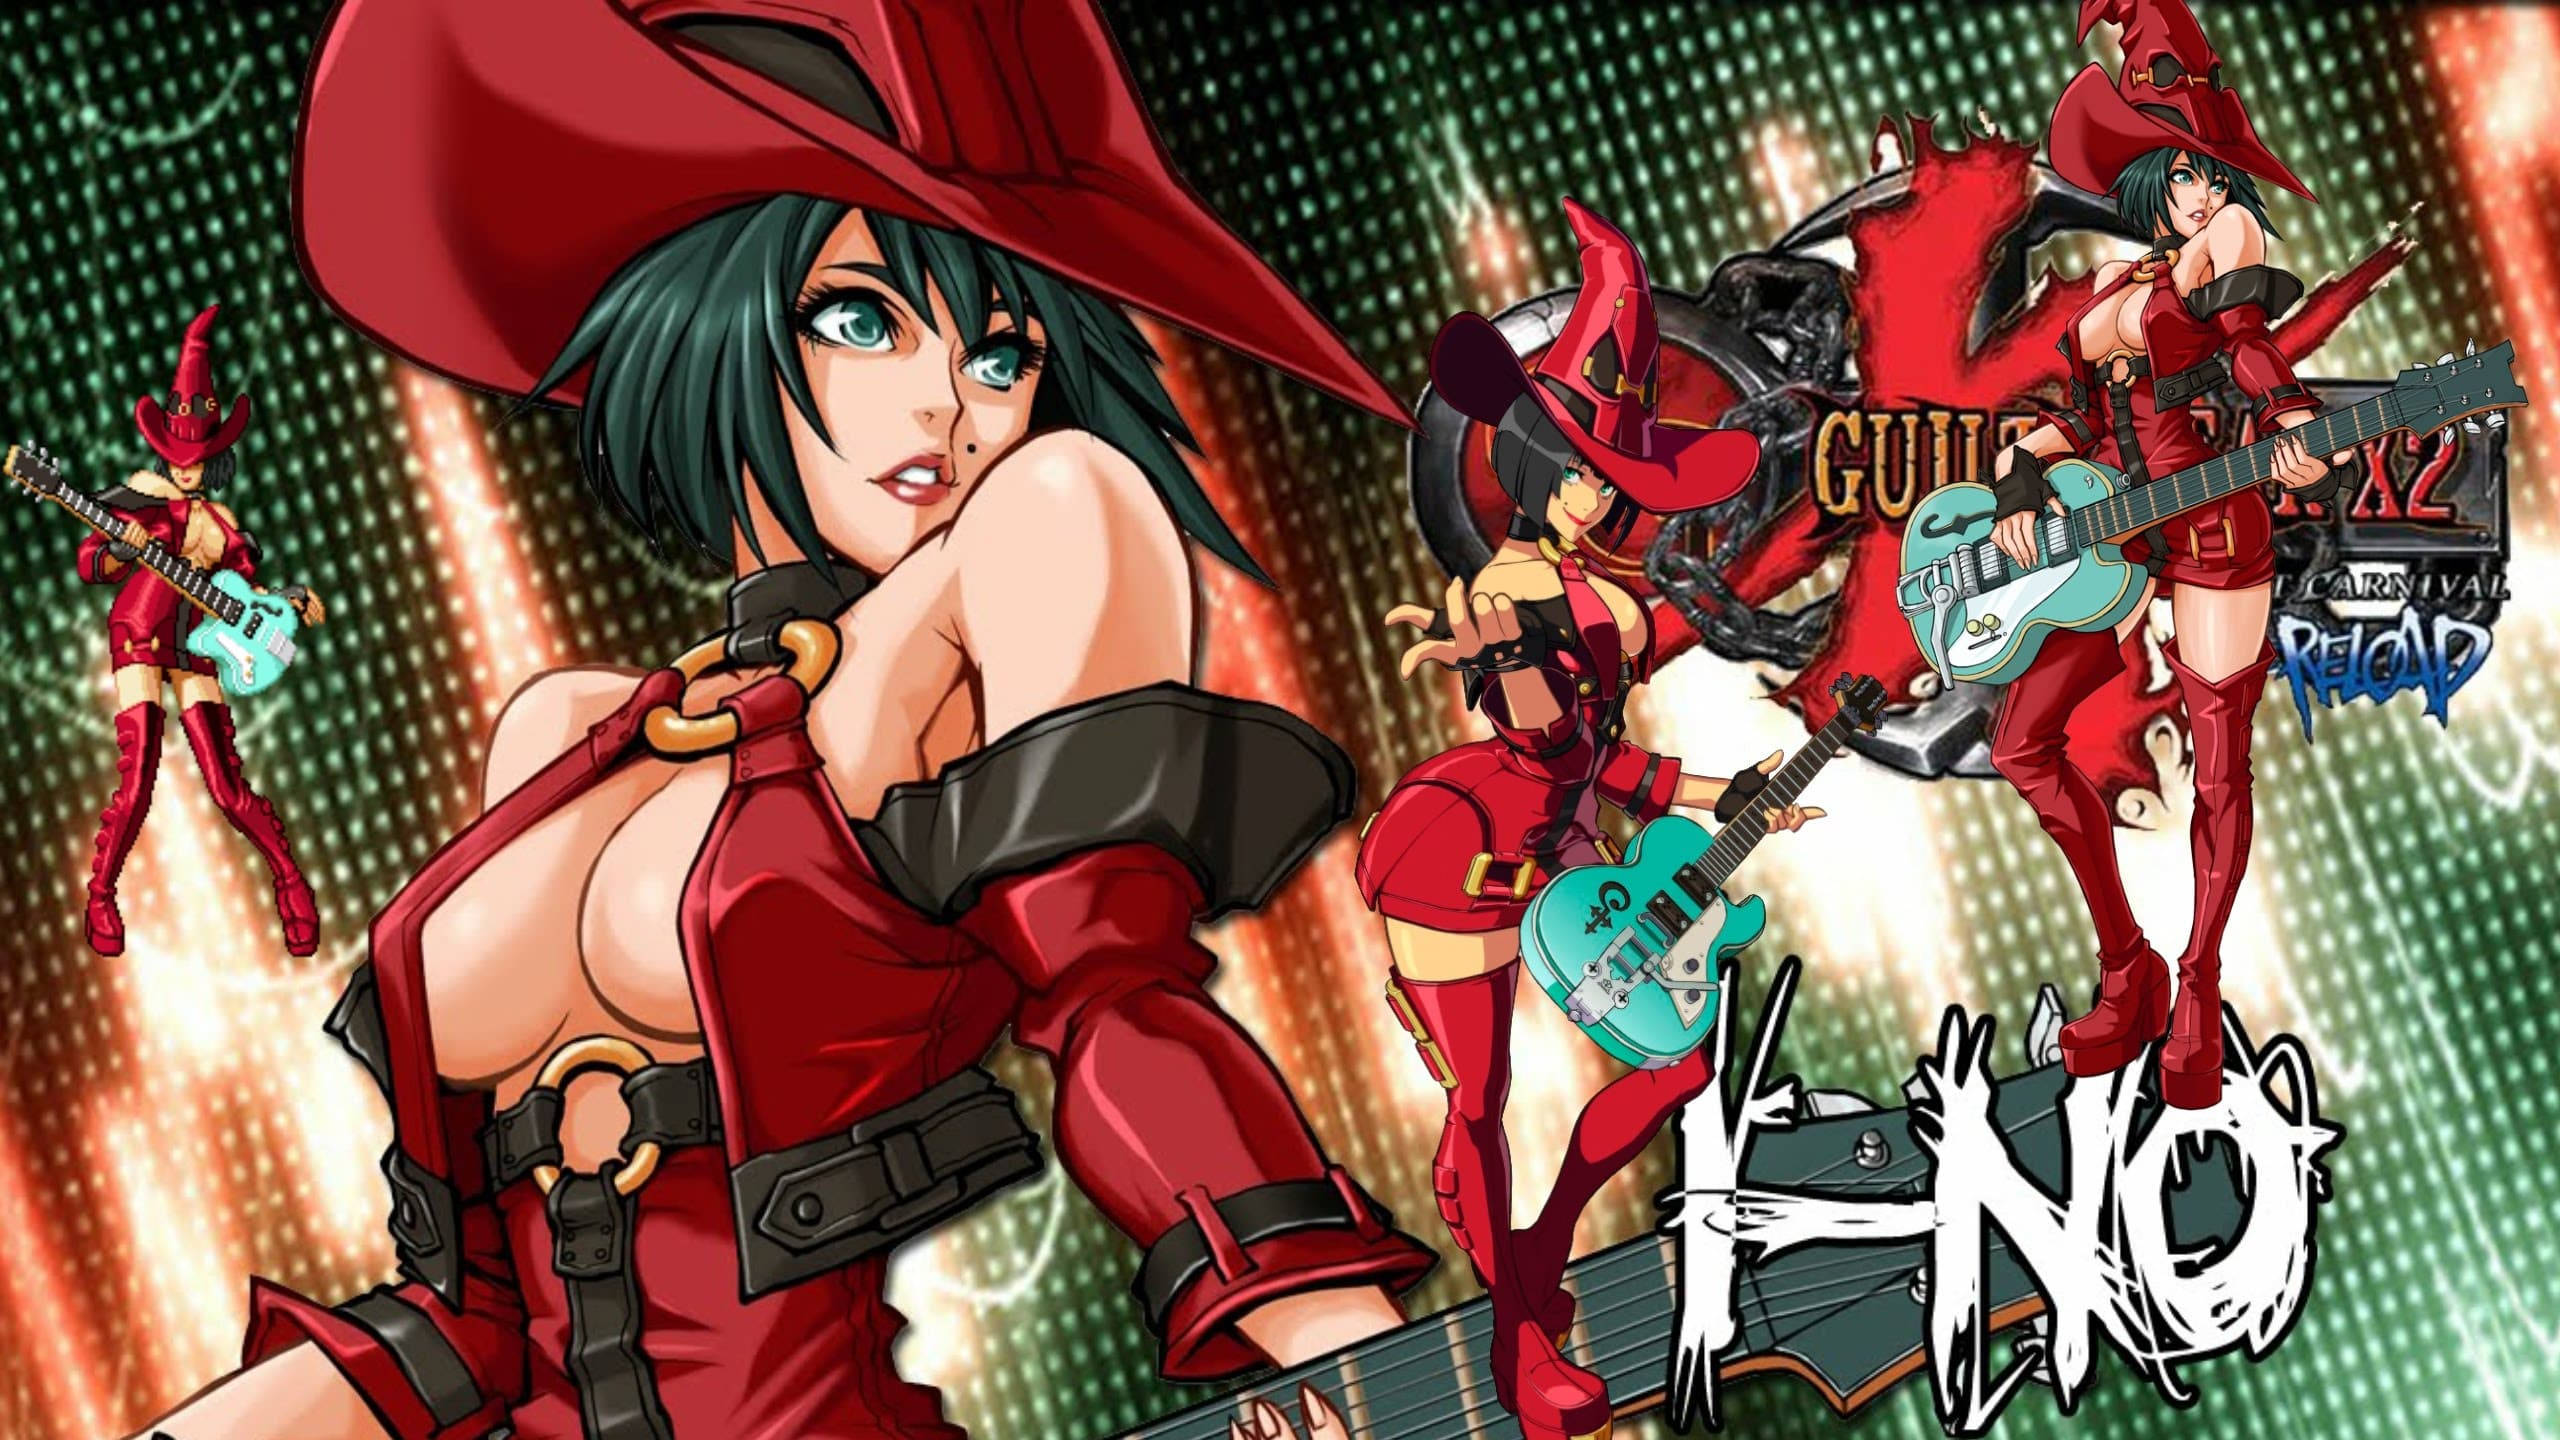 Guilty Gear: I-No Widescreen for desktop